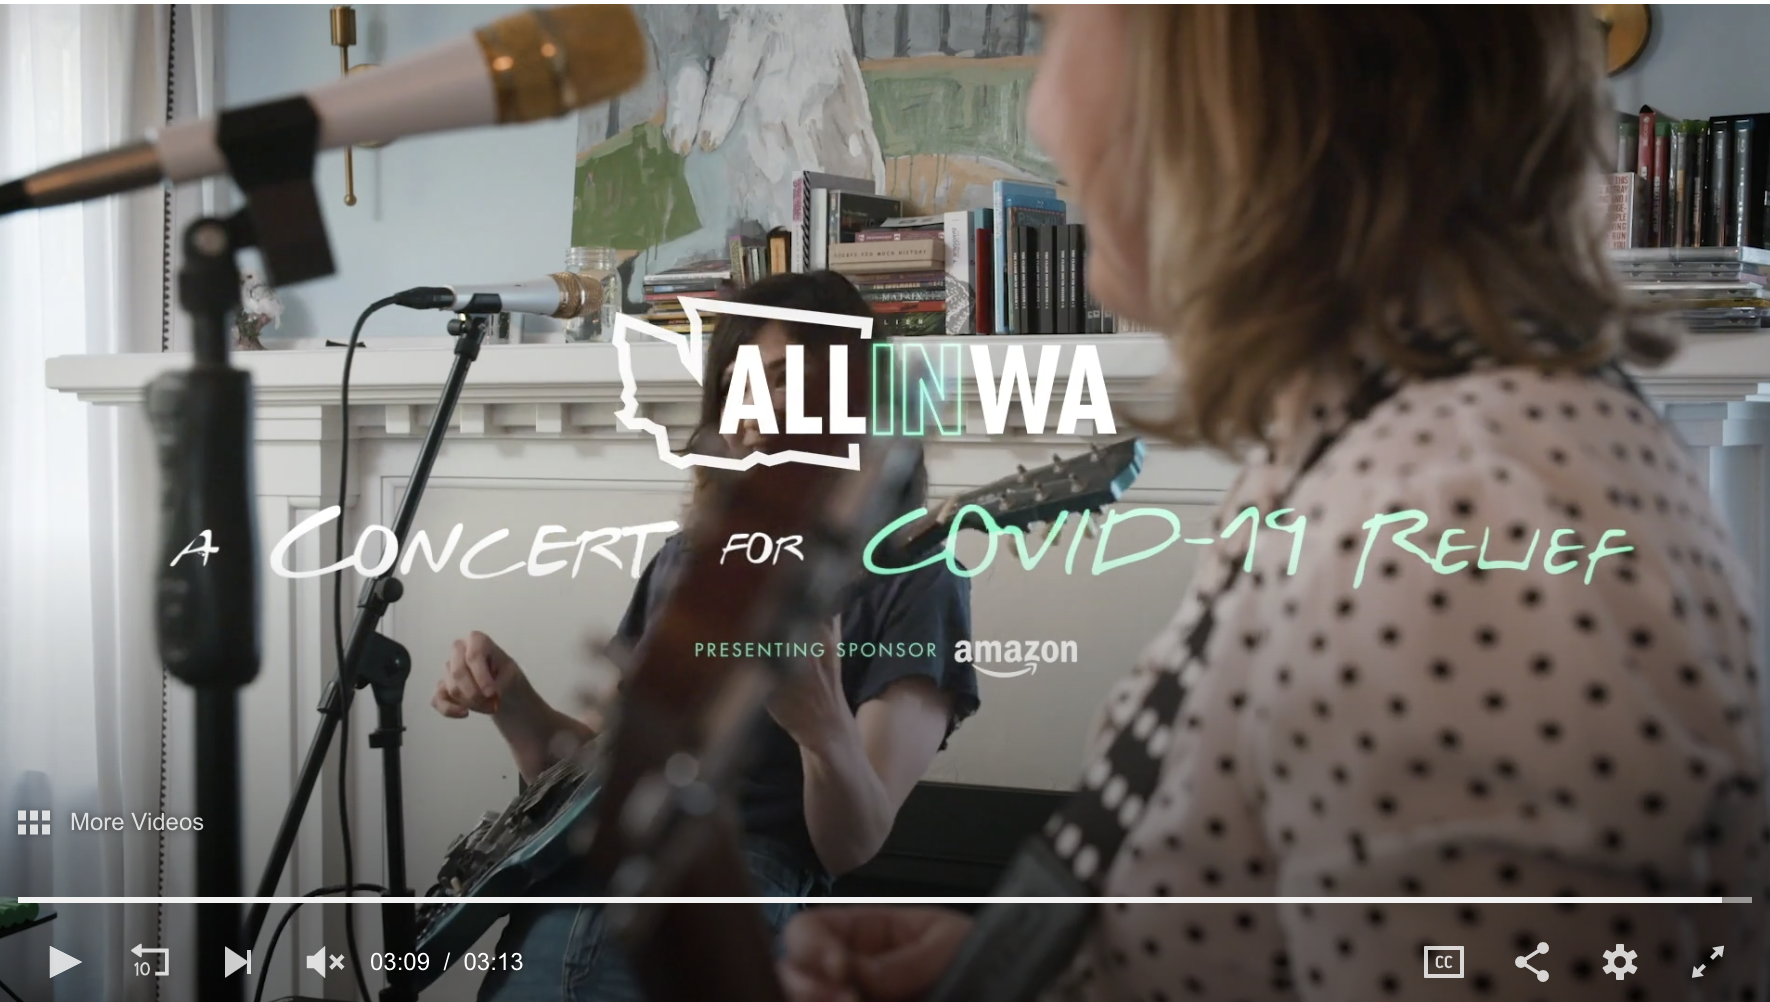 All In WA - Concert for COVID-19 Relief